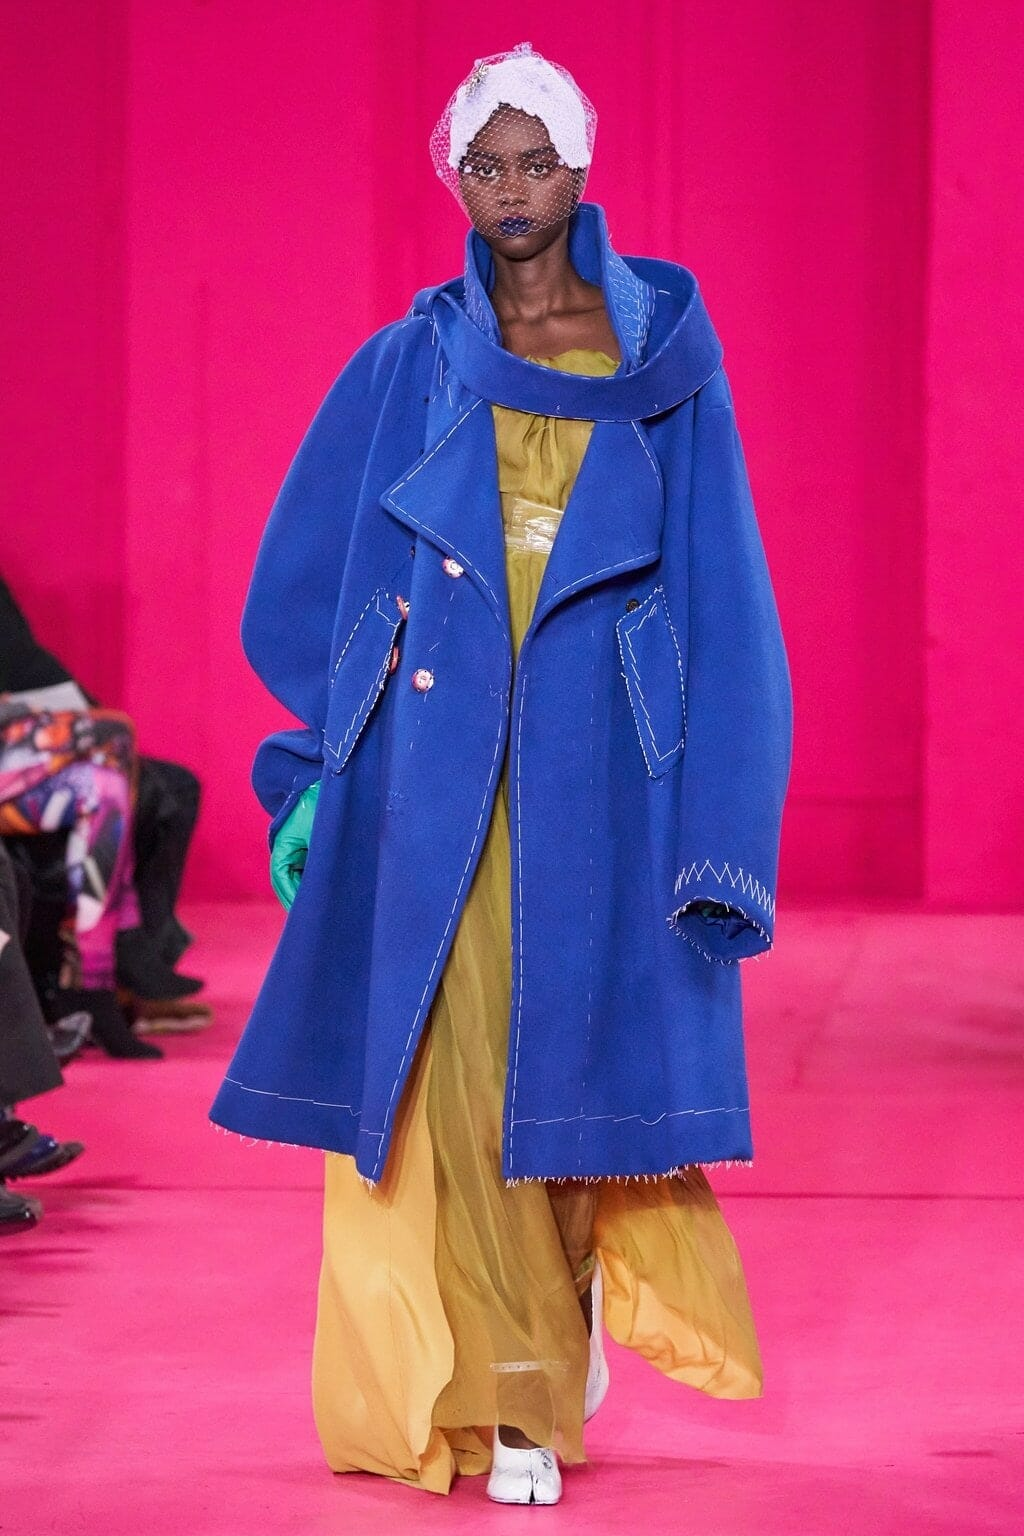 Maison Margiela Haute Couture Spring Summer 2020 Paris. RUNWAY MAGAZINE ® Collections. RUNWAY NOW / RUNWAY NEW